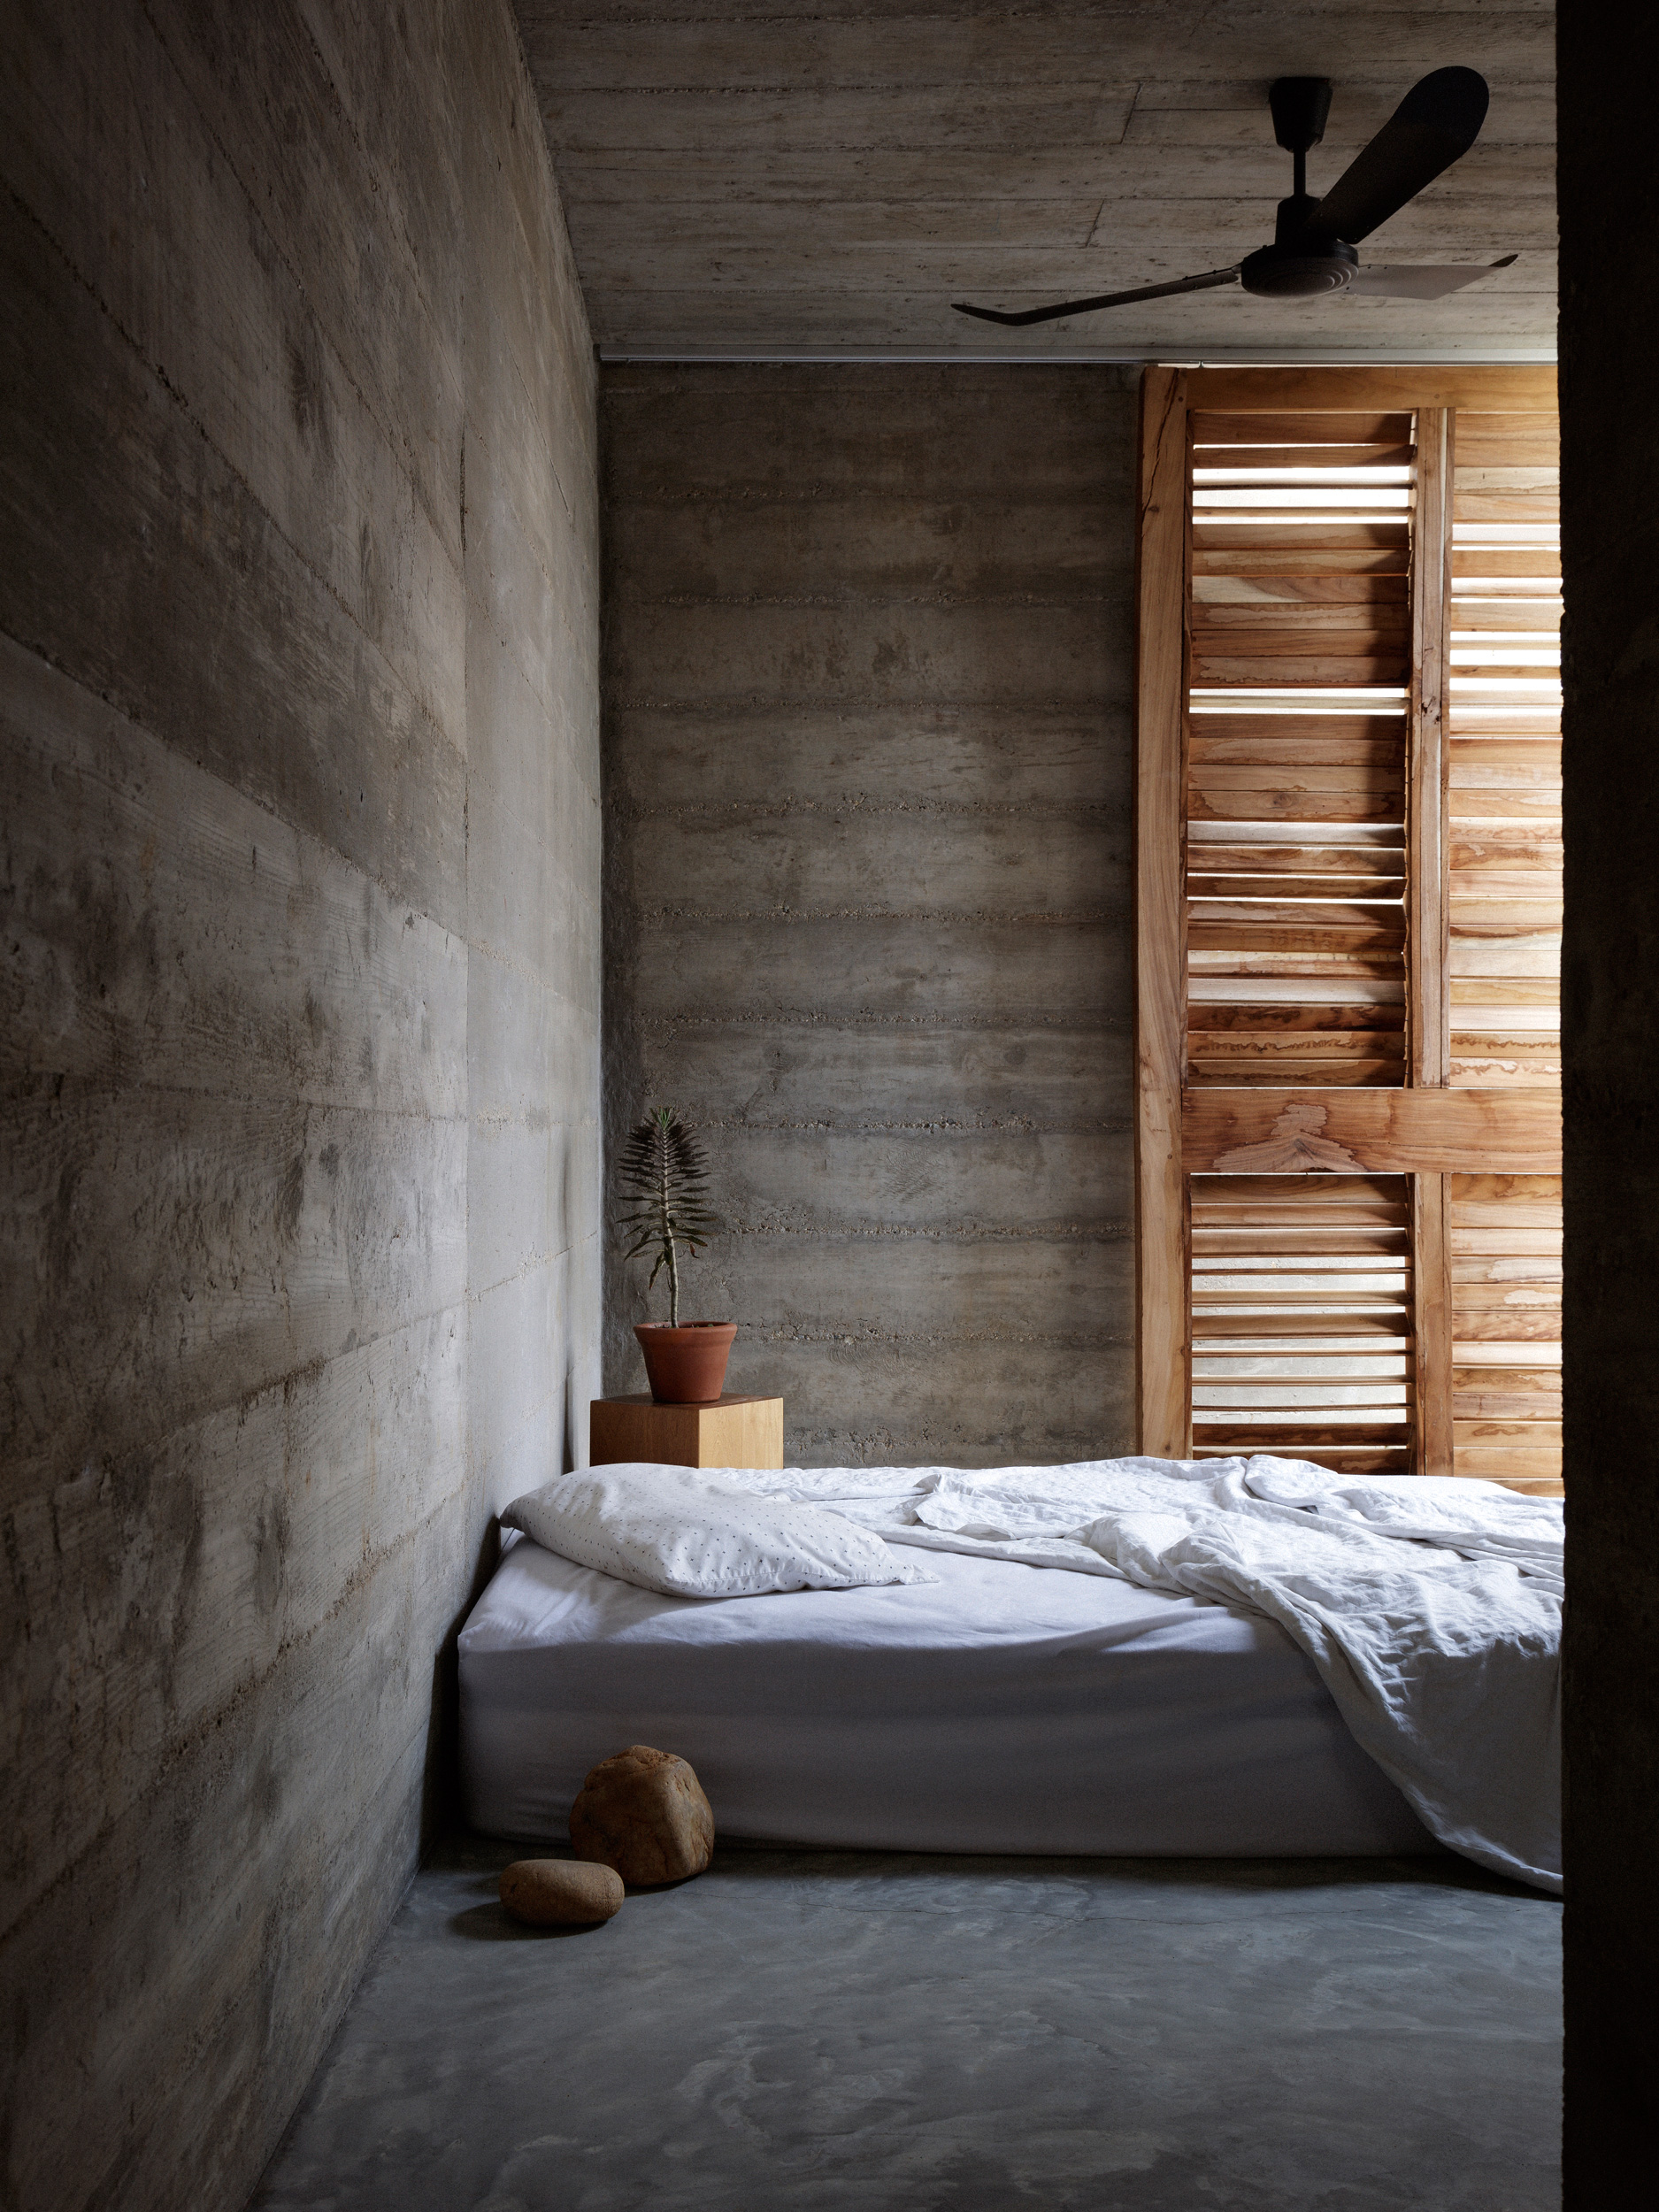 Cozy interiors of the bedroom | Mexico | Ludwig Godefroy | STIRworld